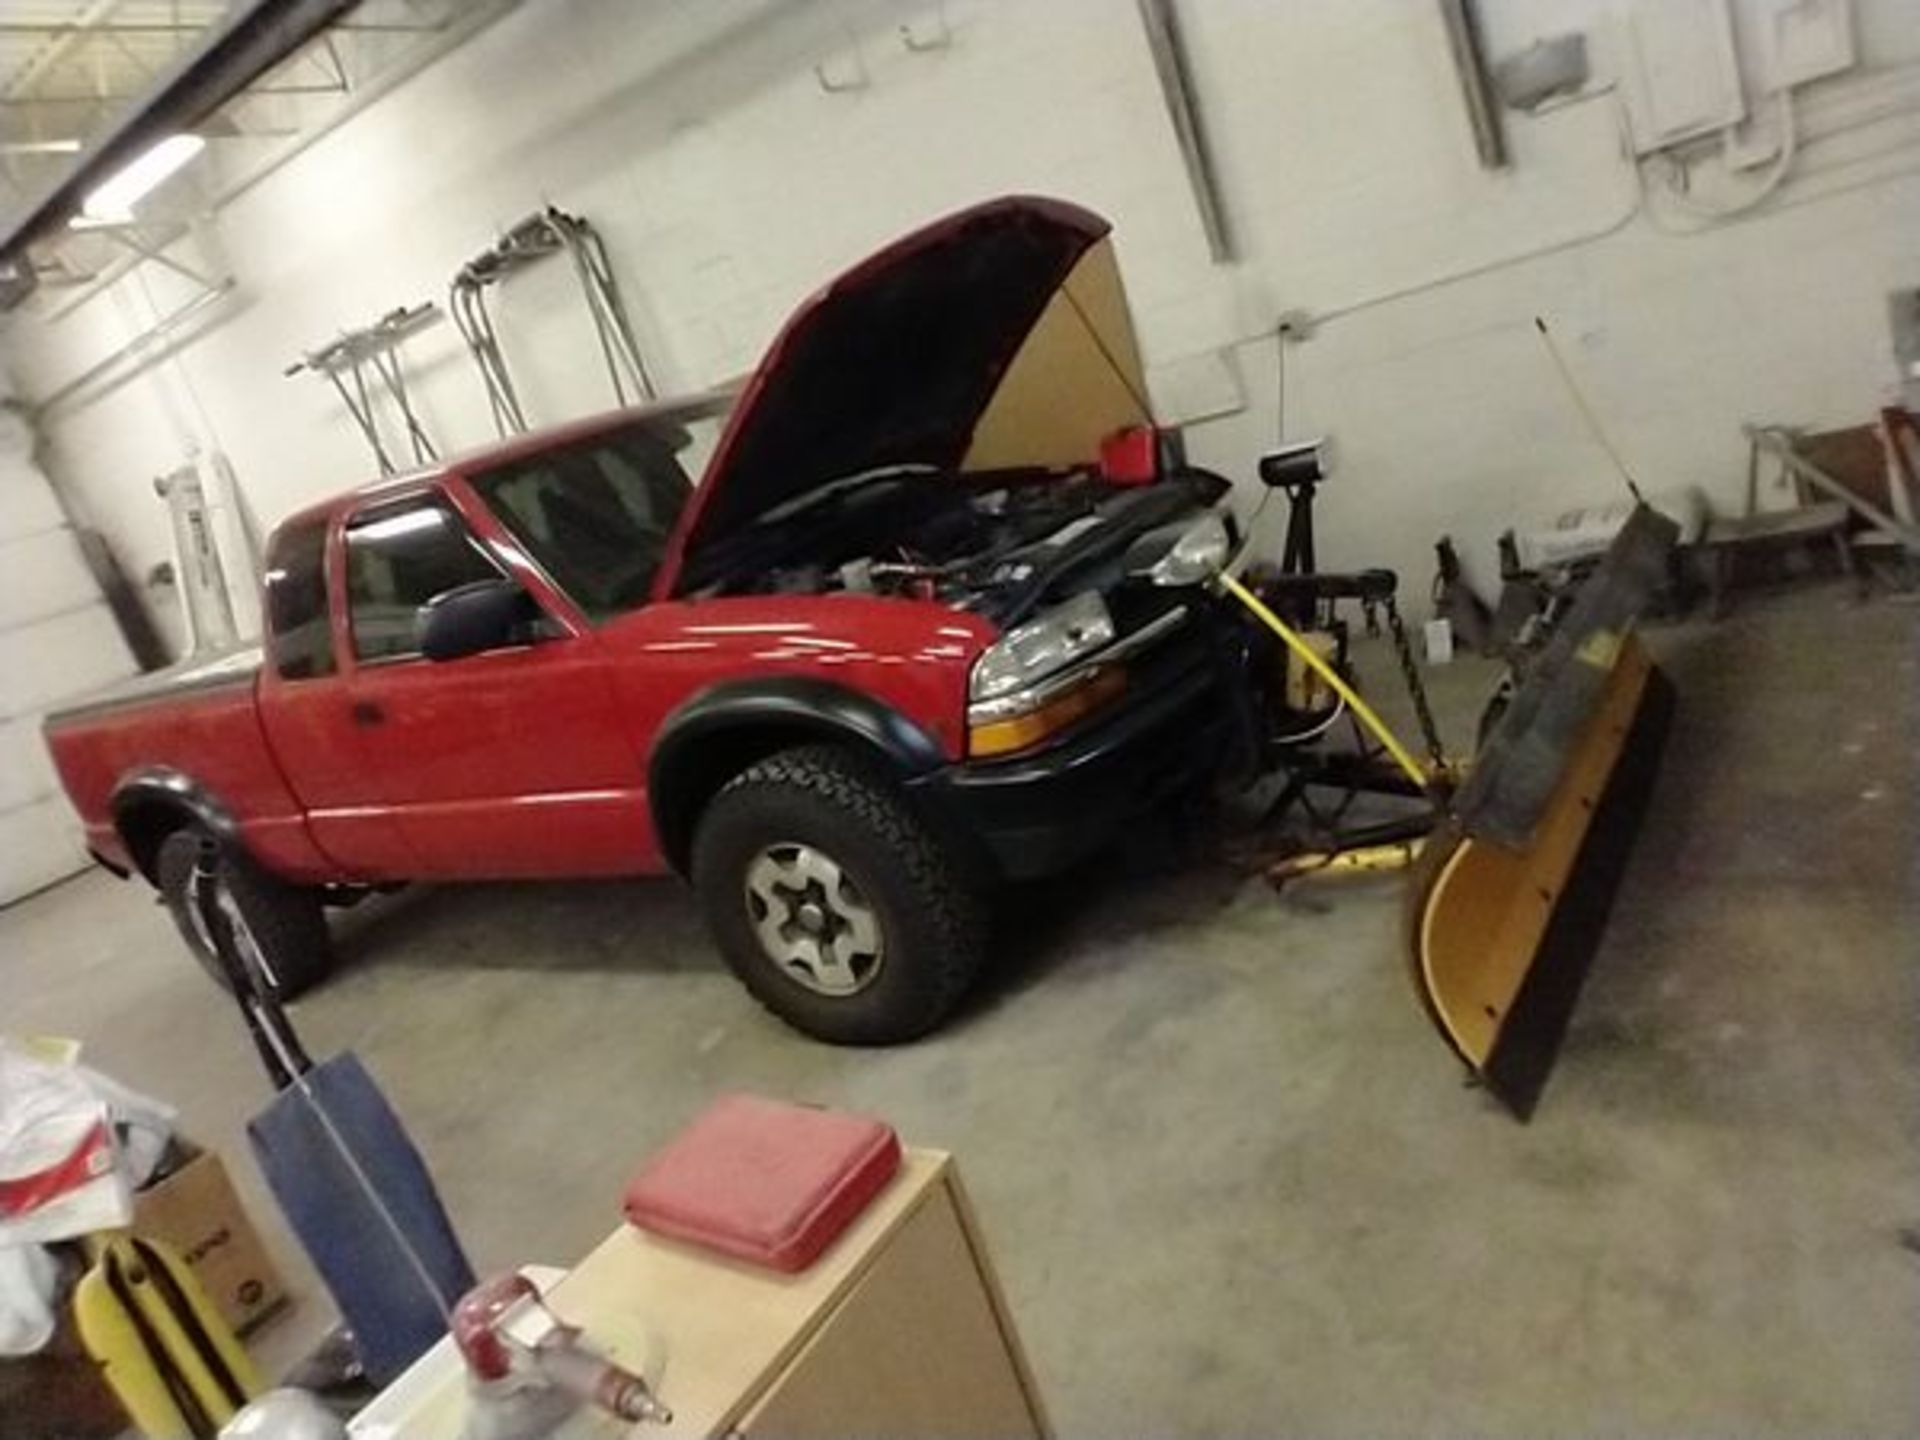 """2003 MANUAL CHEVY S10 TRUCK WITH 78"""" PLOW - NEEDS BREAKS - 109837 MILES - VIN 1GCCT19X938234959 - Image 2 of 9"""